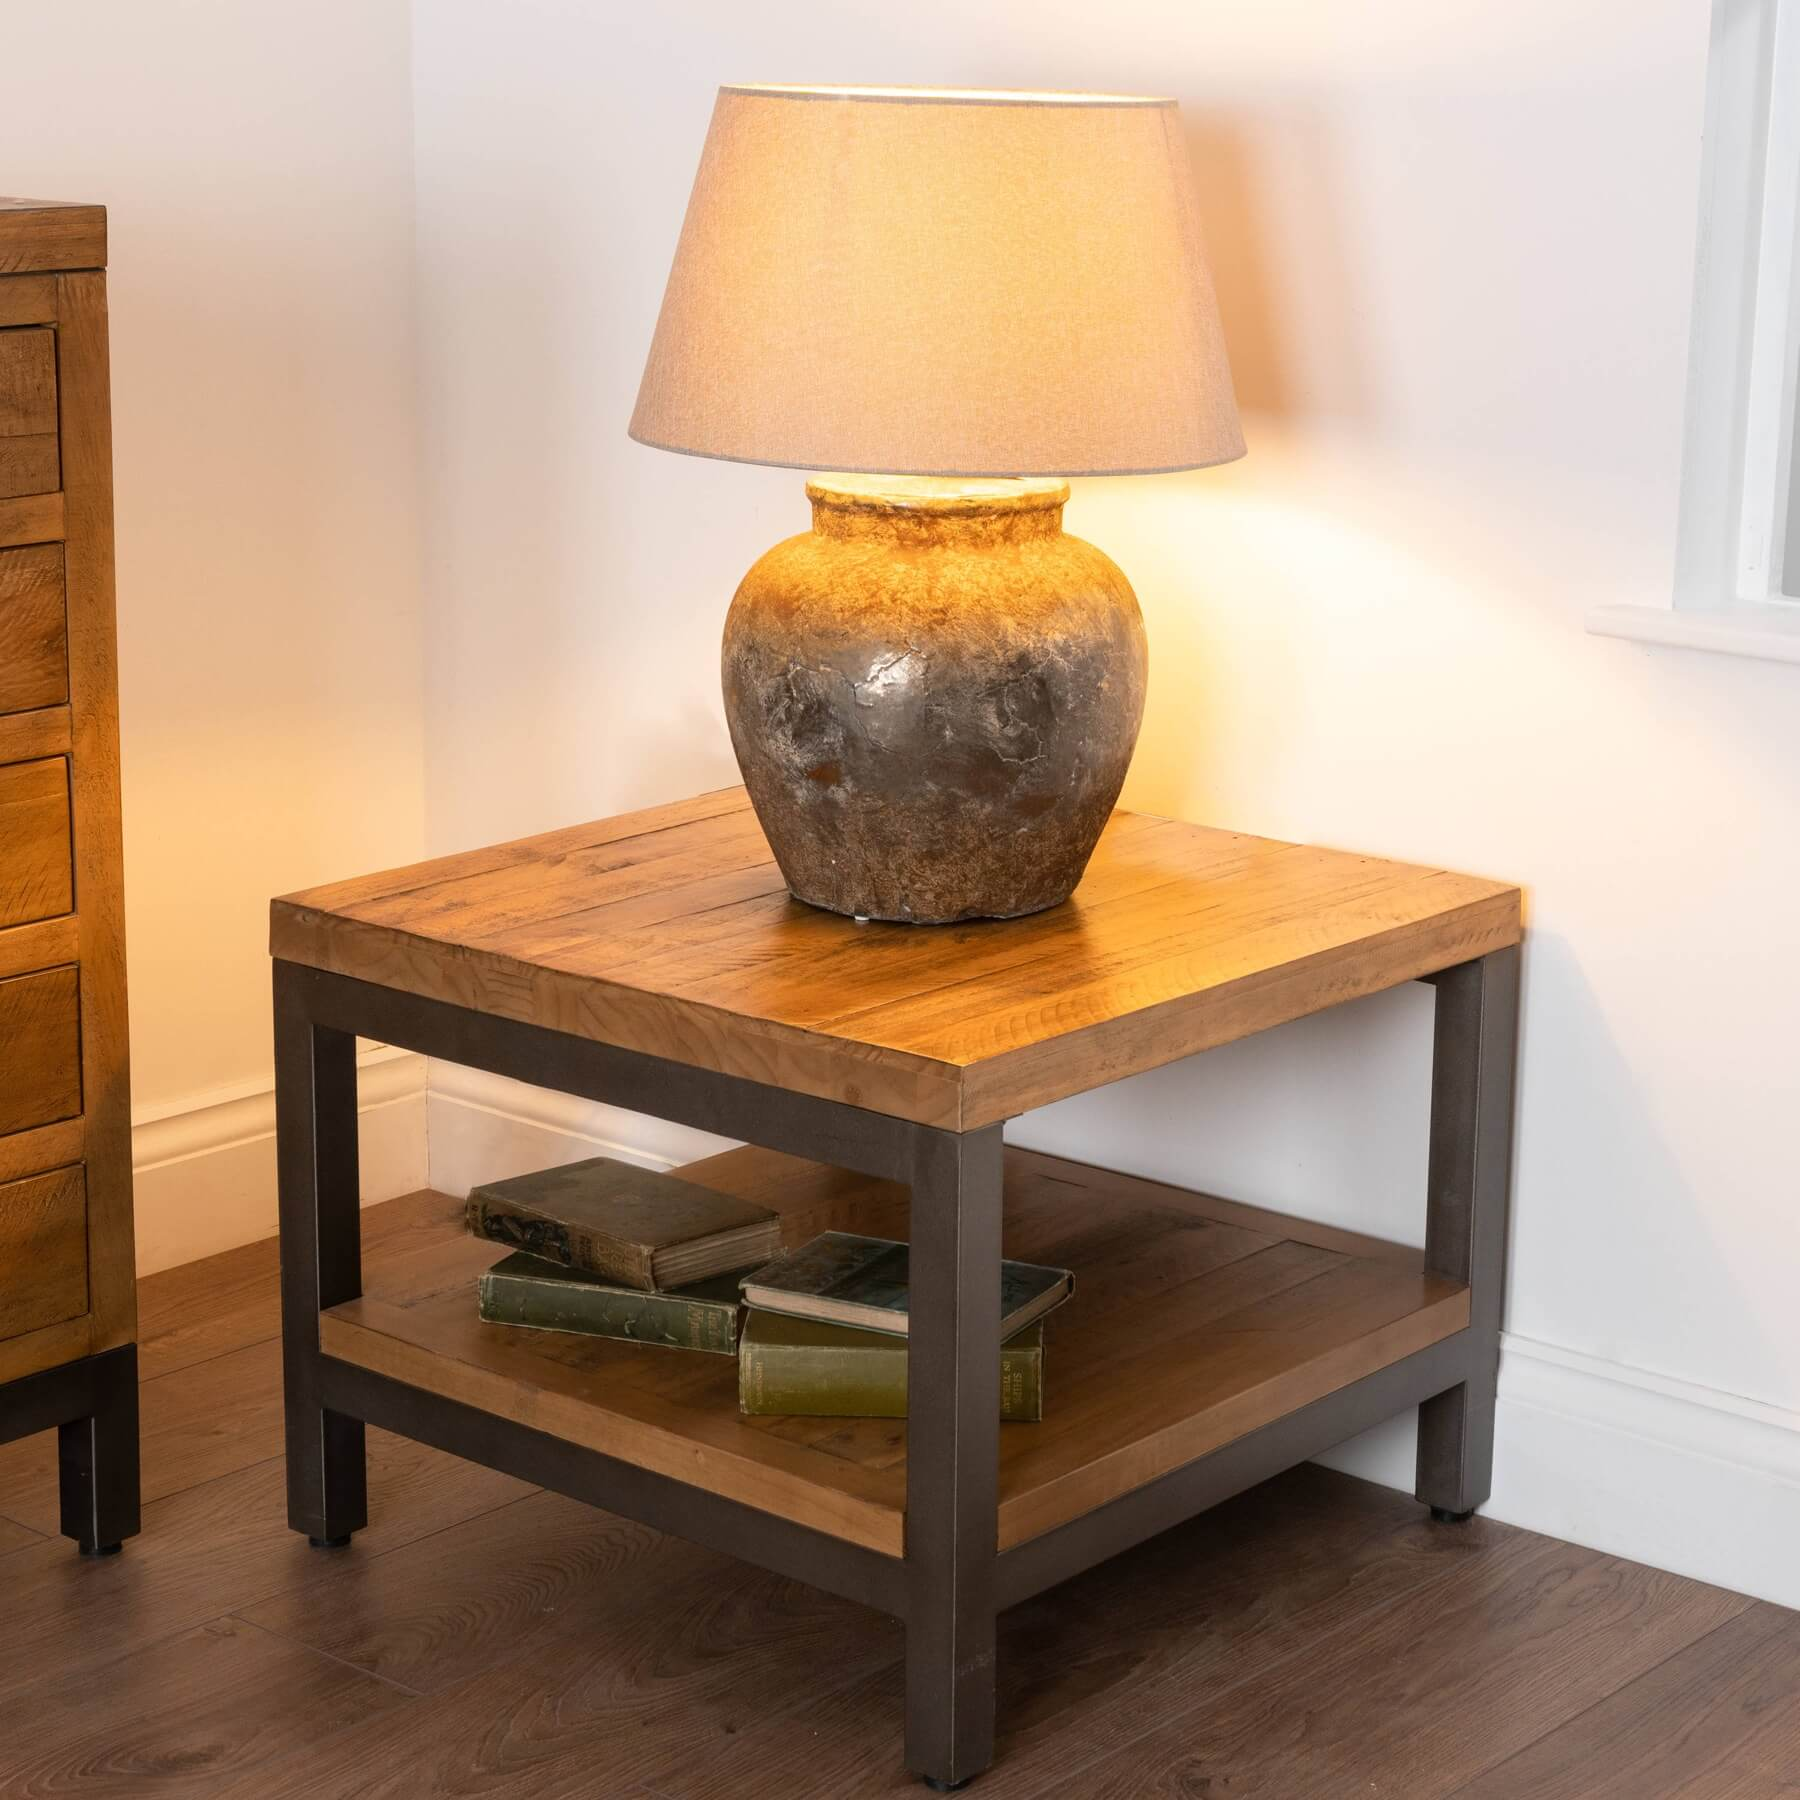 The Draftsman Collection Lamp Table